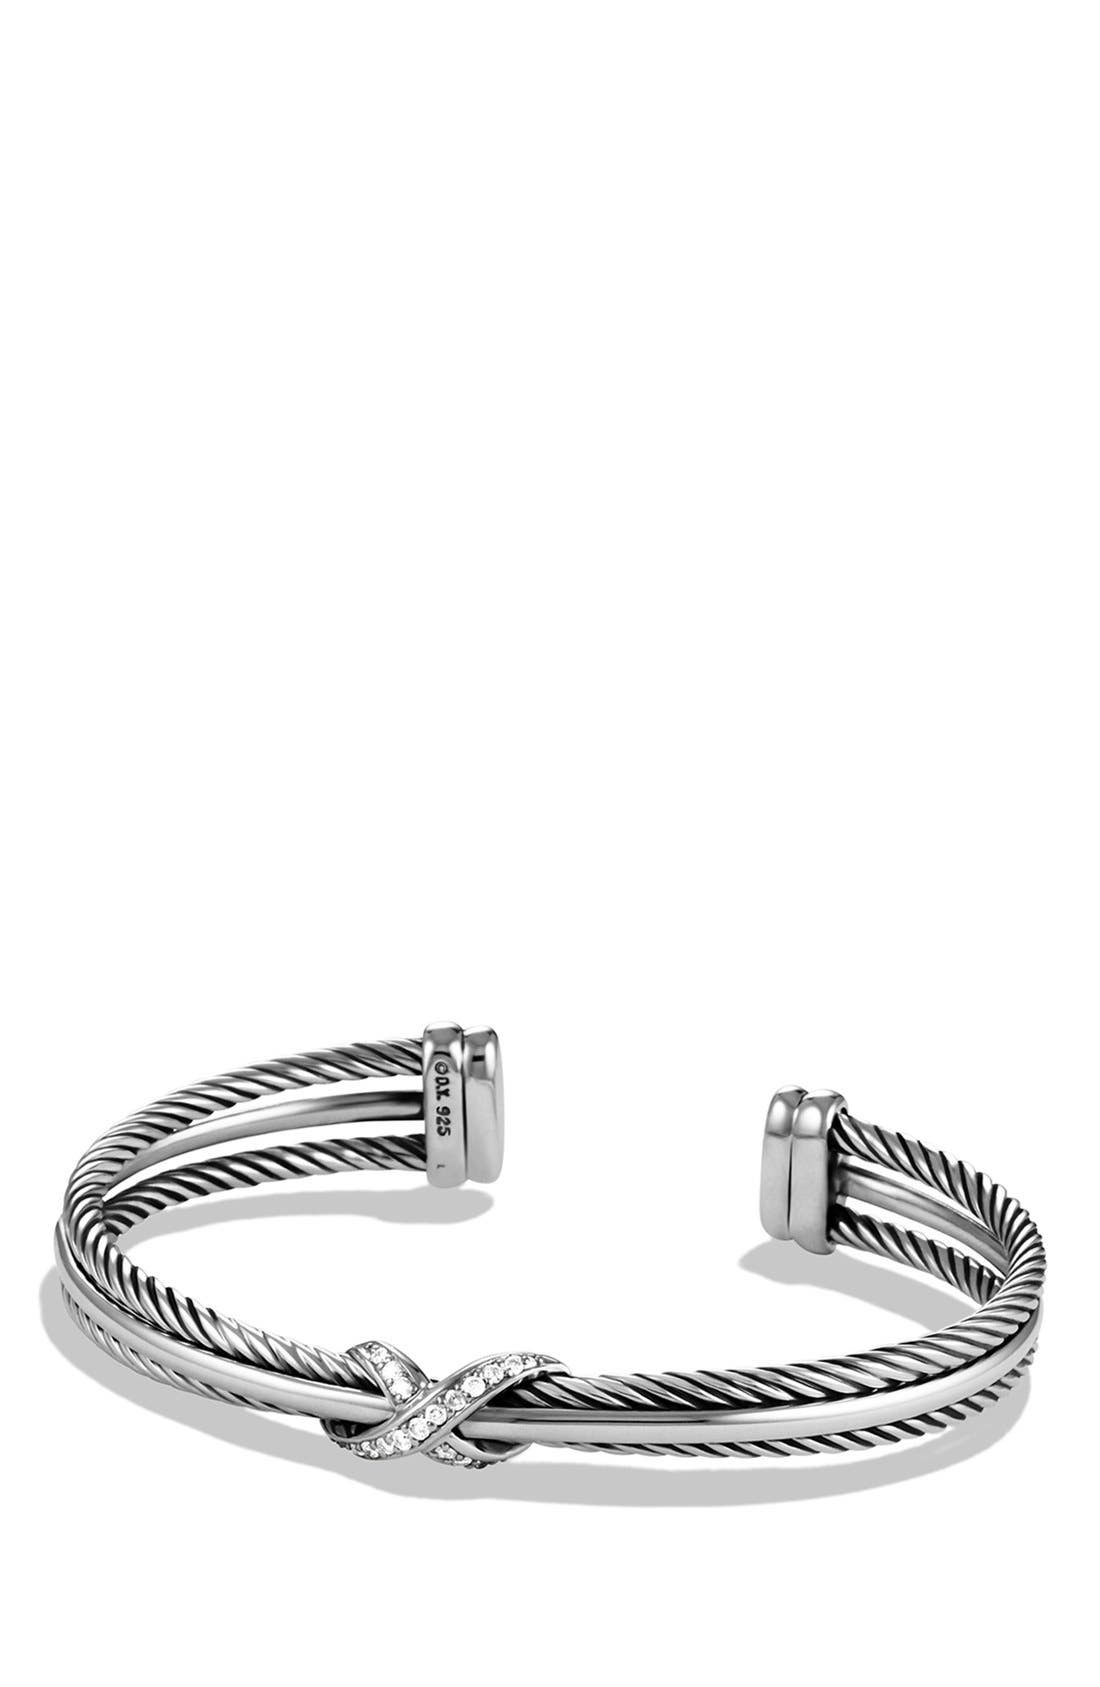 Alternate Image 1 Selected - David Yurman 'X' Crossover Cuff with Diamonds